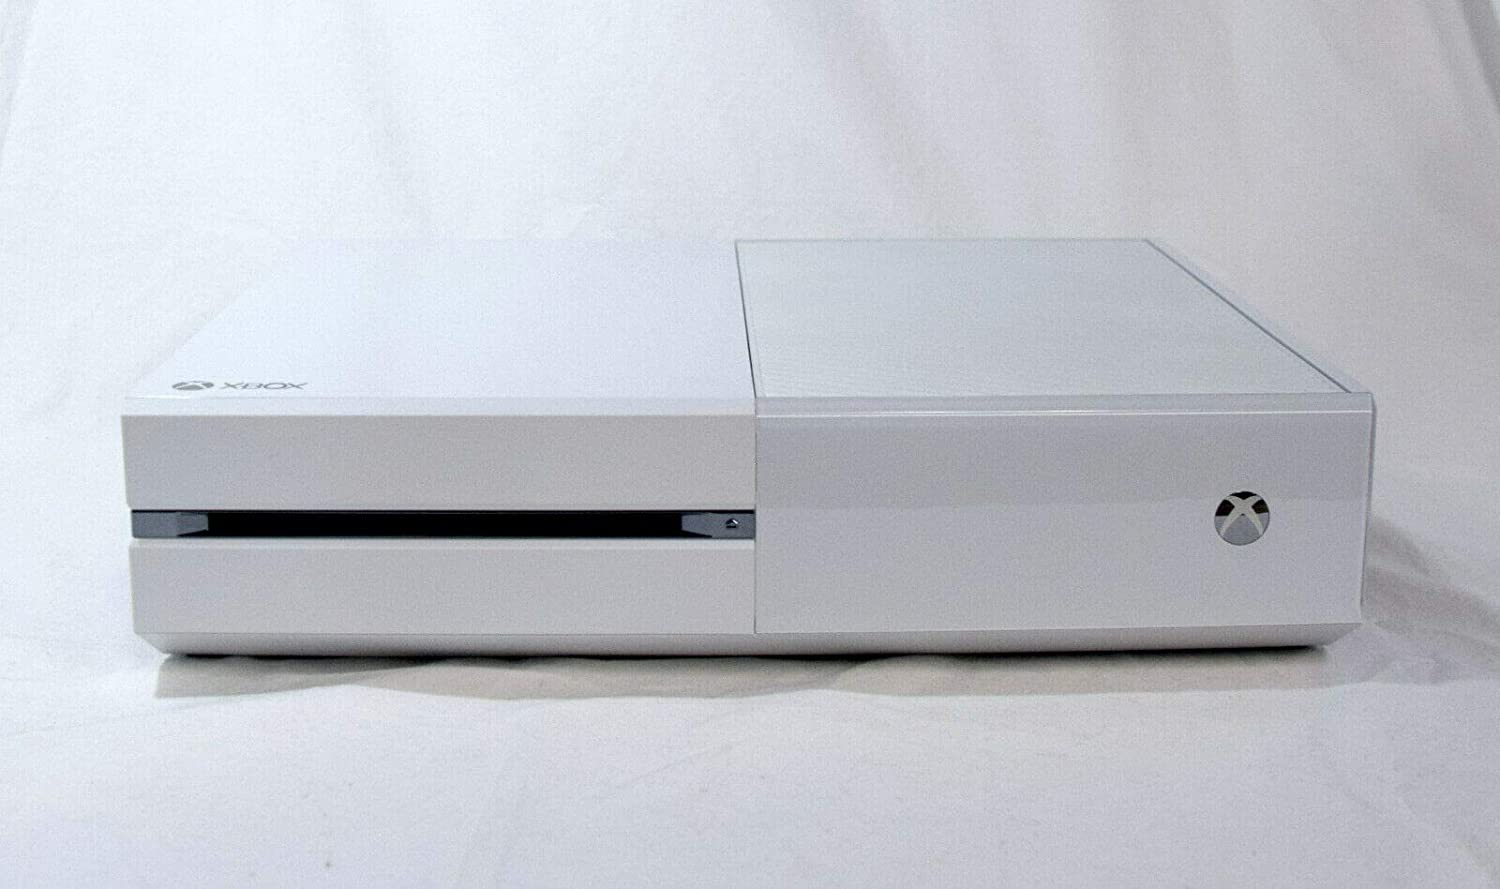 Xbox One 500GB Console ONLY WHITE 1540 Super sale 5C9-00021 Model v2 XB1 At the price of surprise Ga